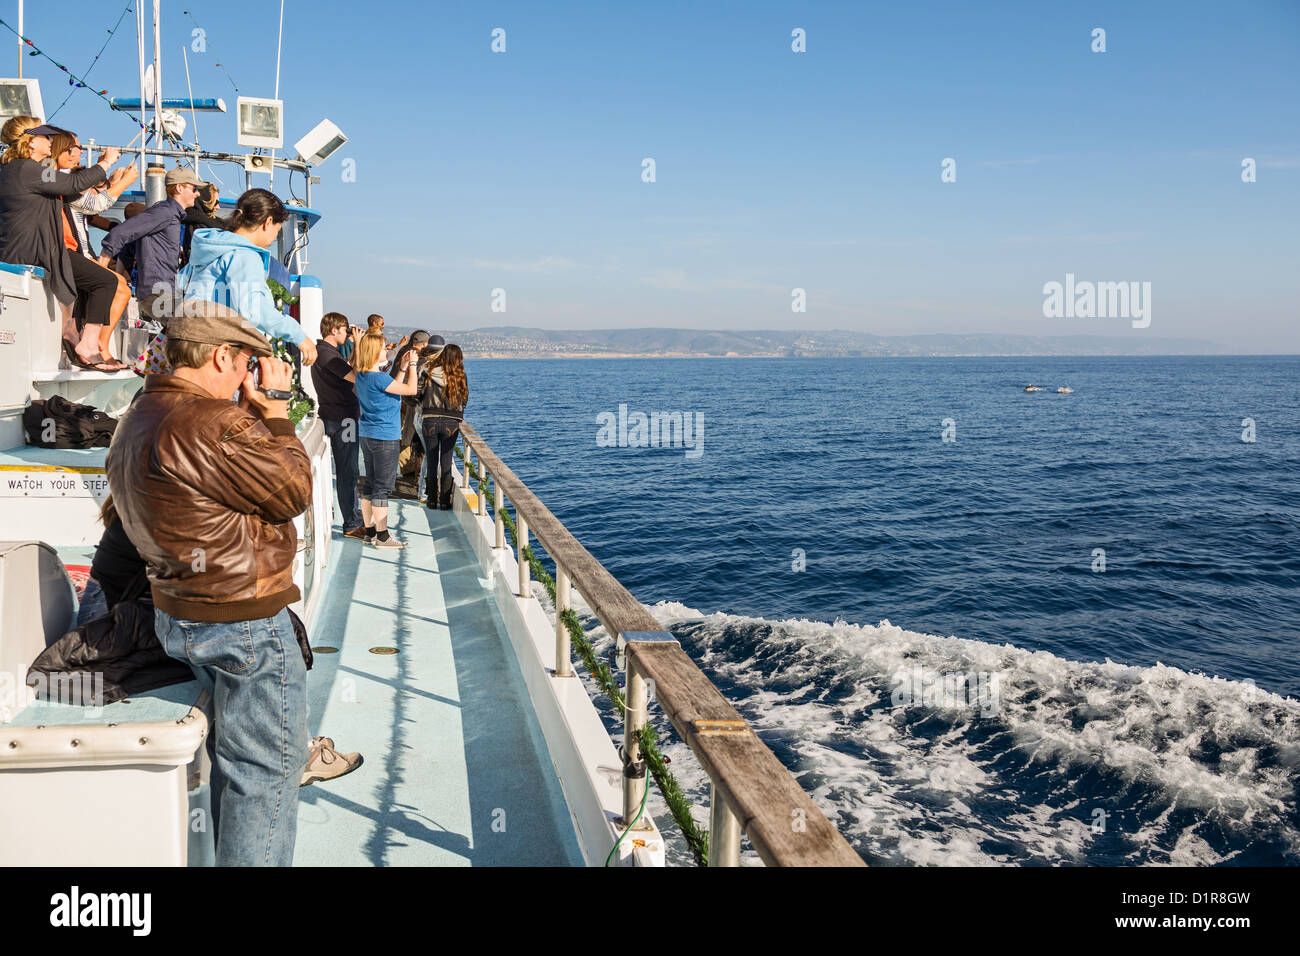 Whale watching off the coast of Newport Beach, California. - Stock Image